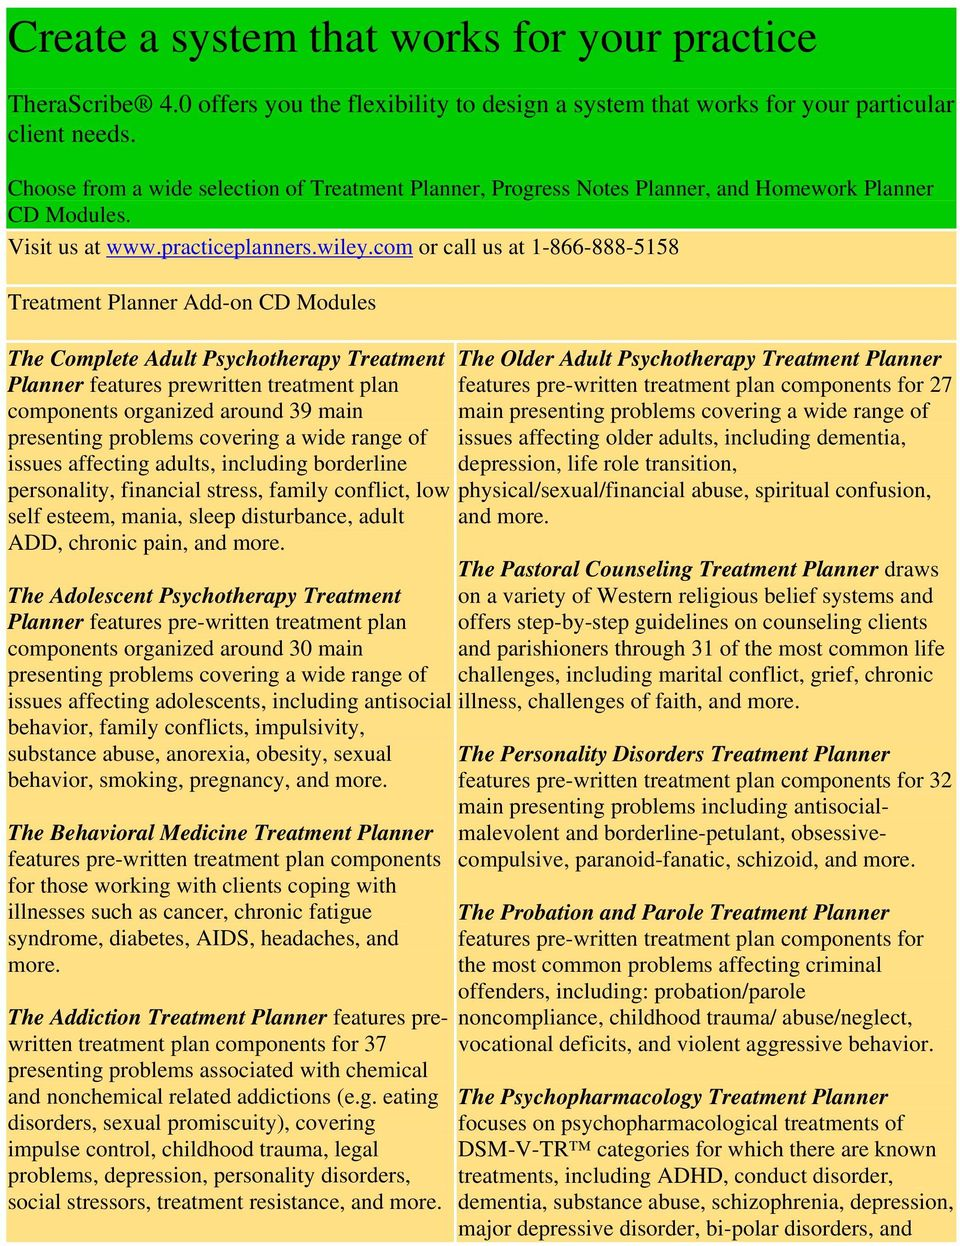 com or call us at 1-866-888-5158 Treatment Planner Add-on CD Modules The Complete Adult Psychotherapy Treatment components organized around 39 main presenting problems covering a wide range of issues